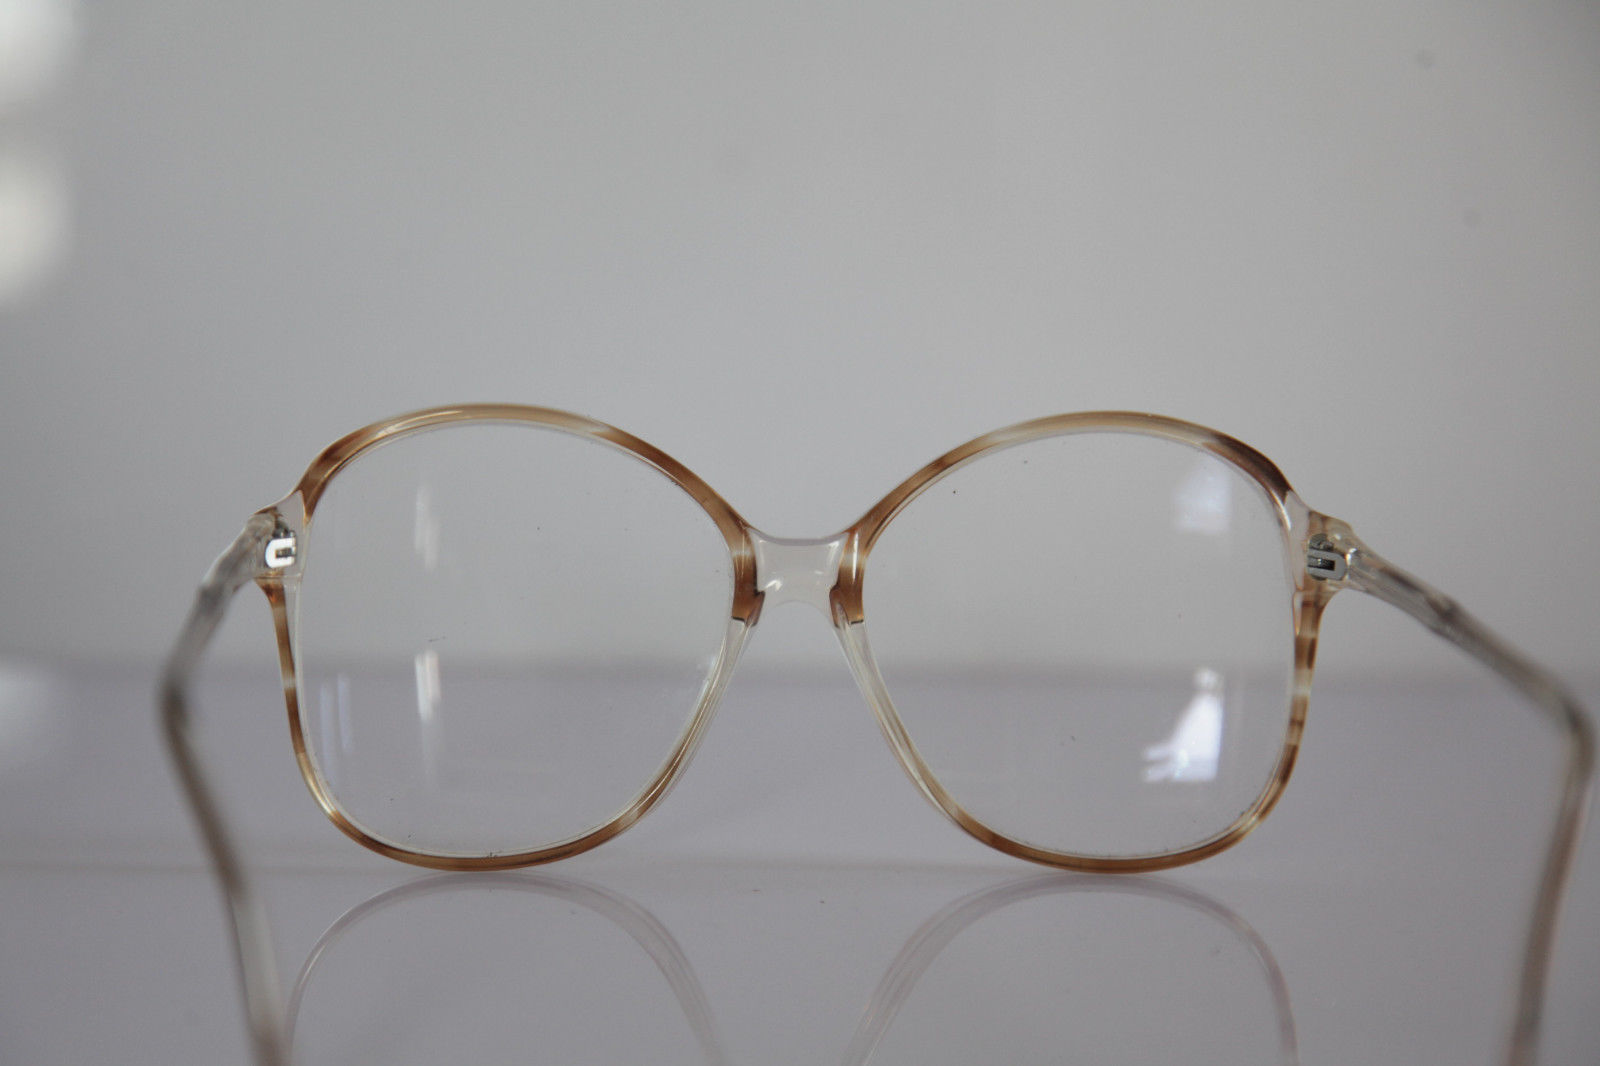 KANA Eyewear, Crystal Brown Frame, RX Able Clear Lenses Prescription. Germany